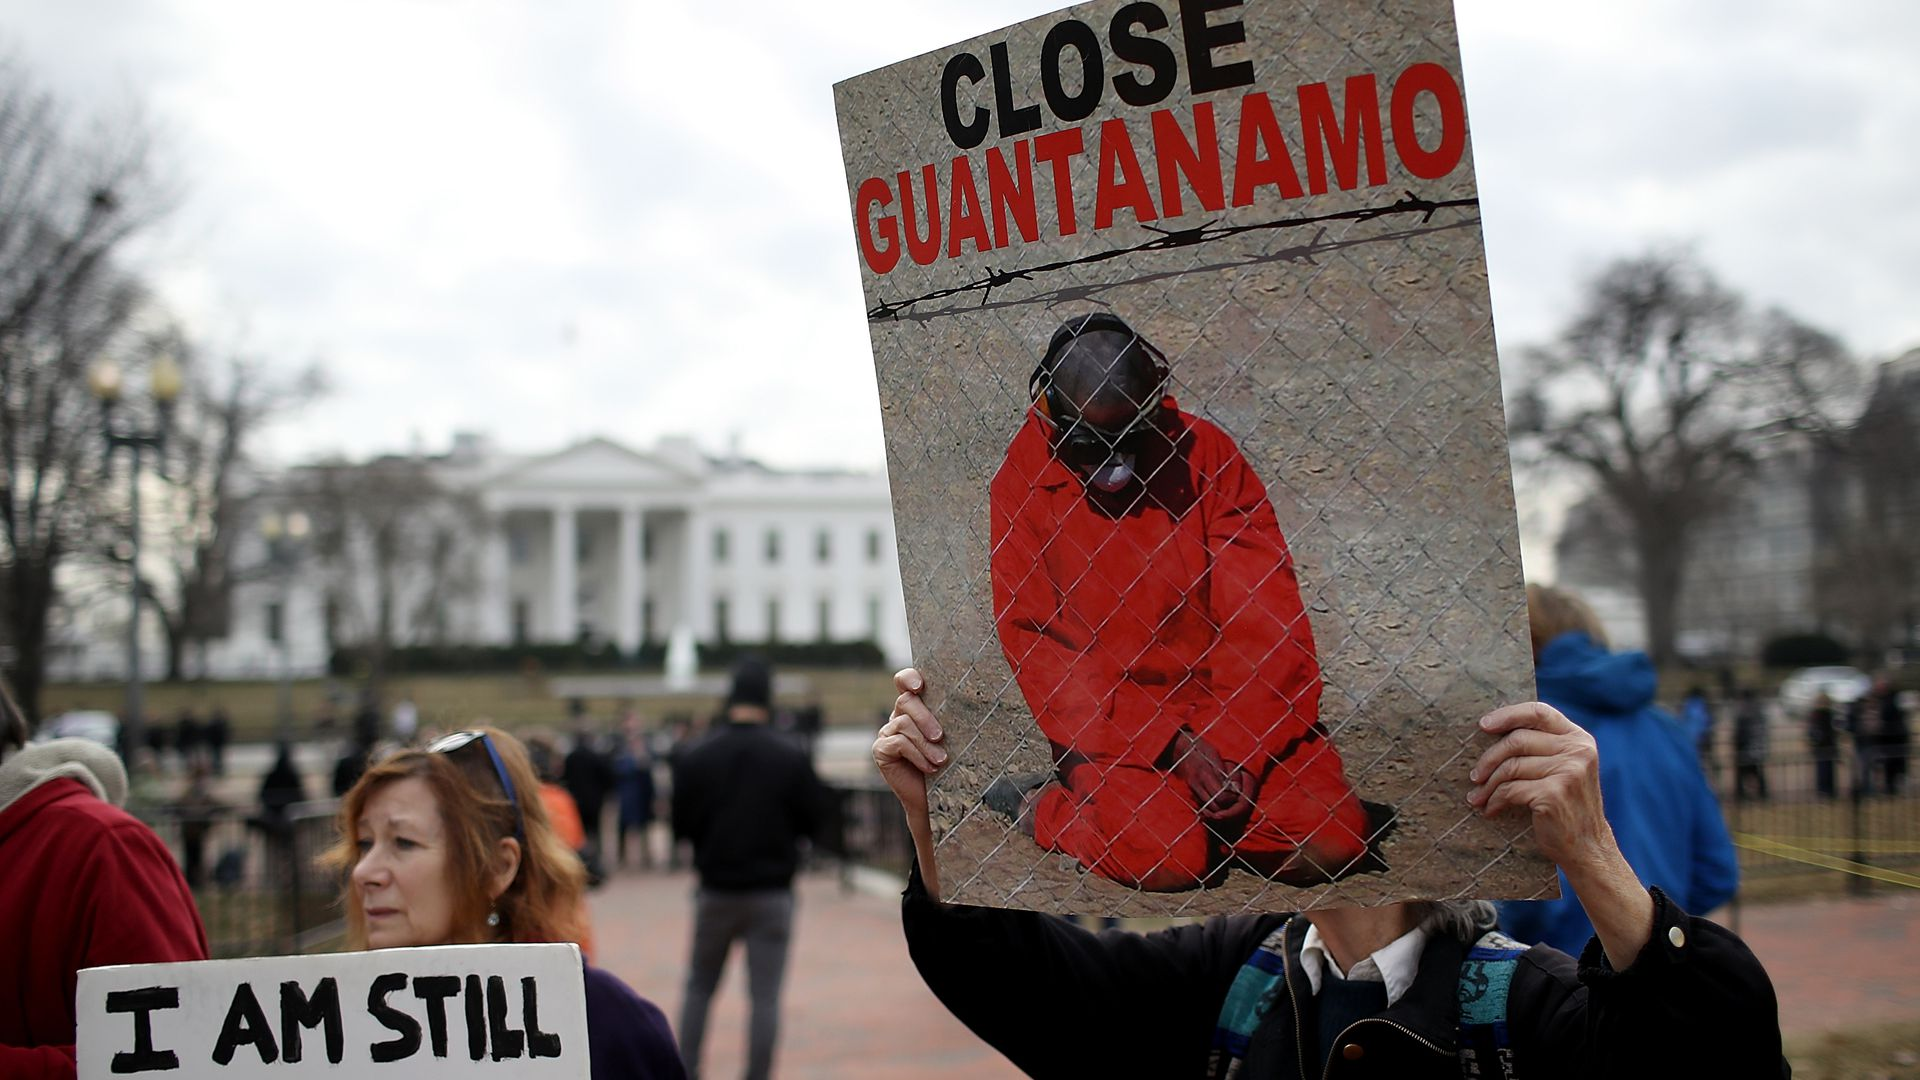 Activists protest the continued operation of the Guantanamo Bay detention camp in front of the White House.